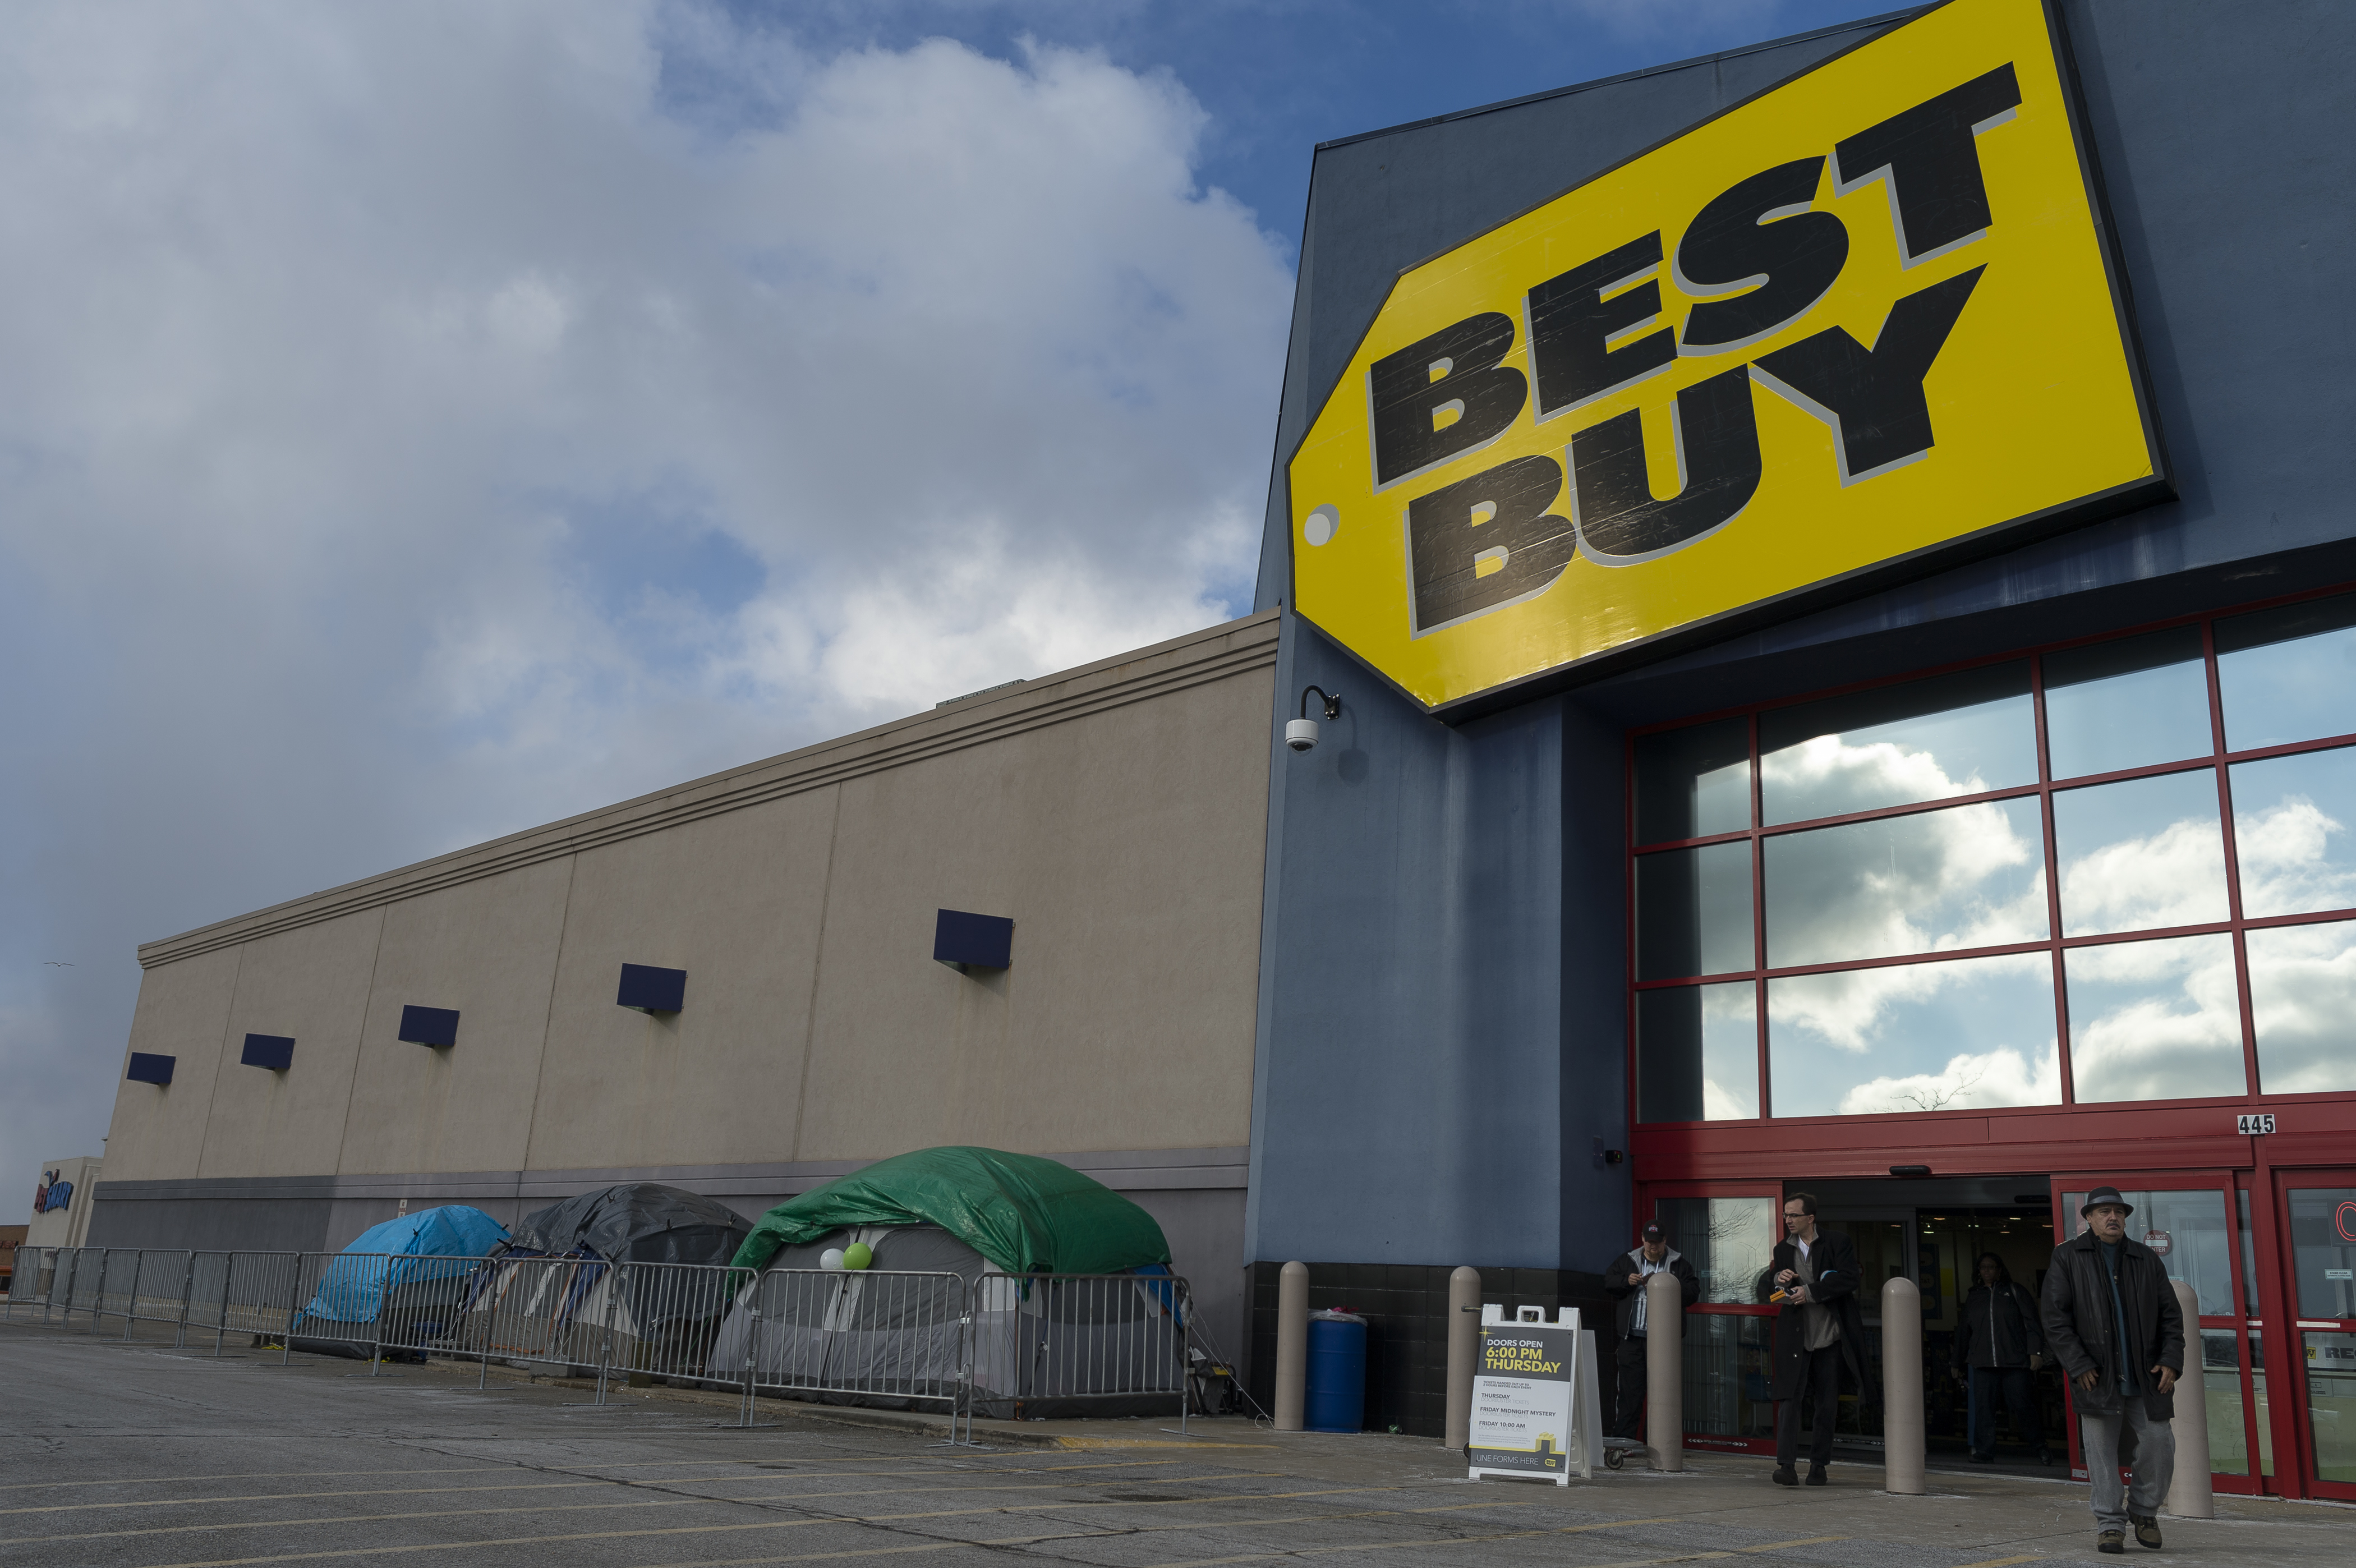 Cuyahoga Falls, OH - Customers camp outside of Best Buy in anticipation of Black Friday sales